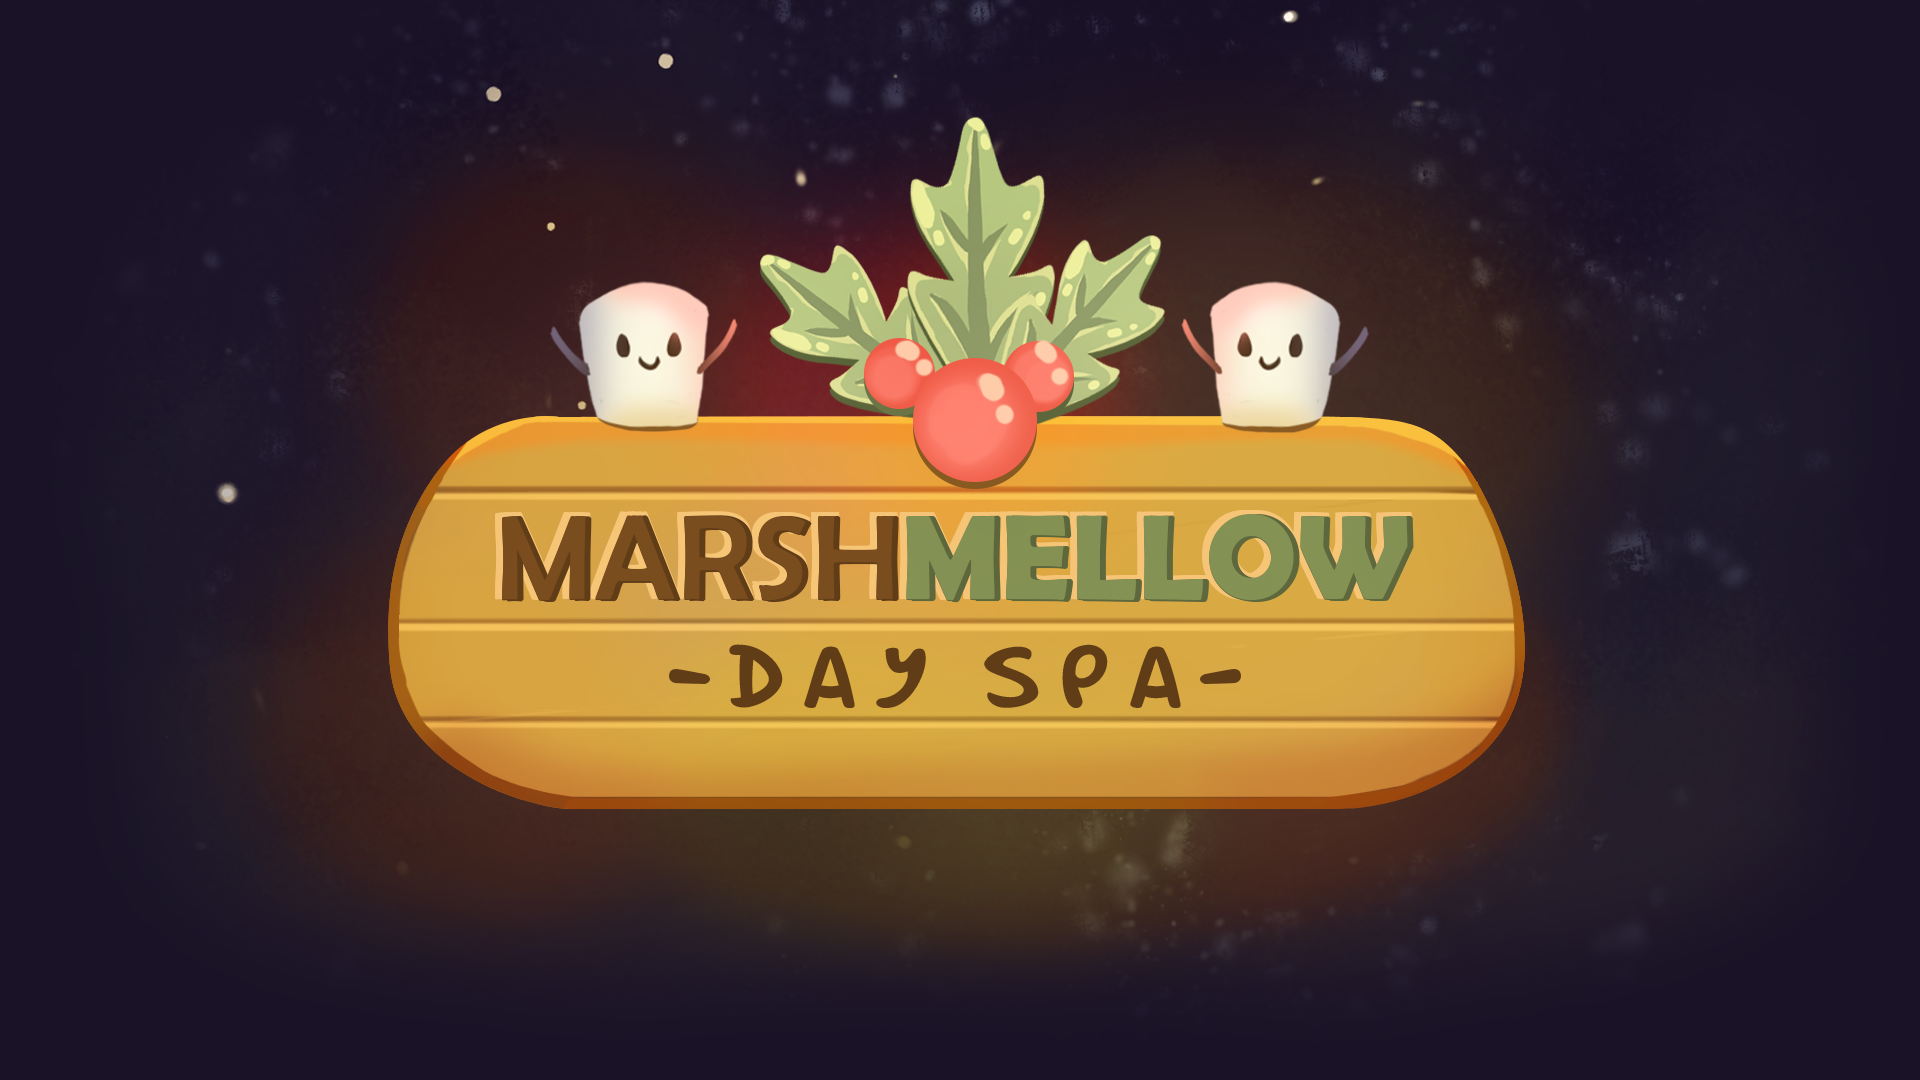 Marshmellow Day Spa